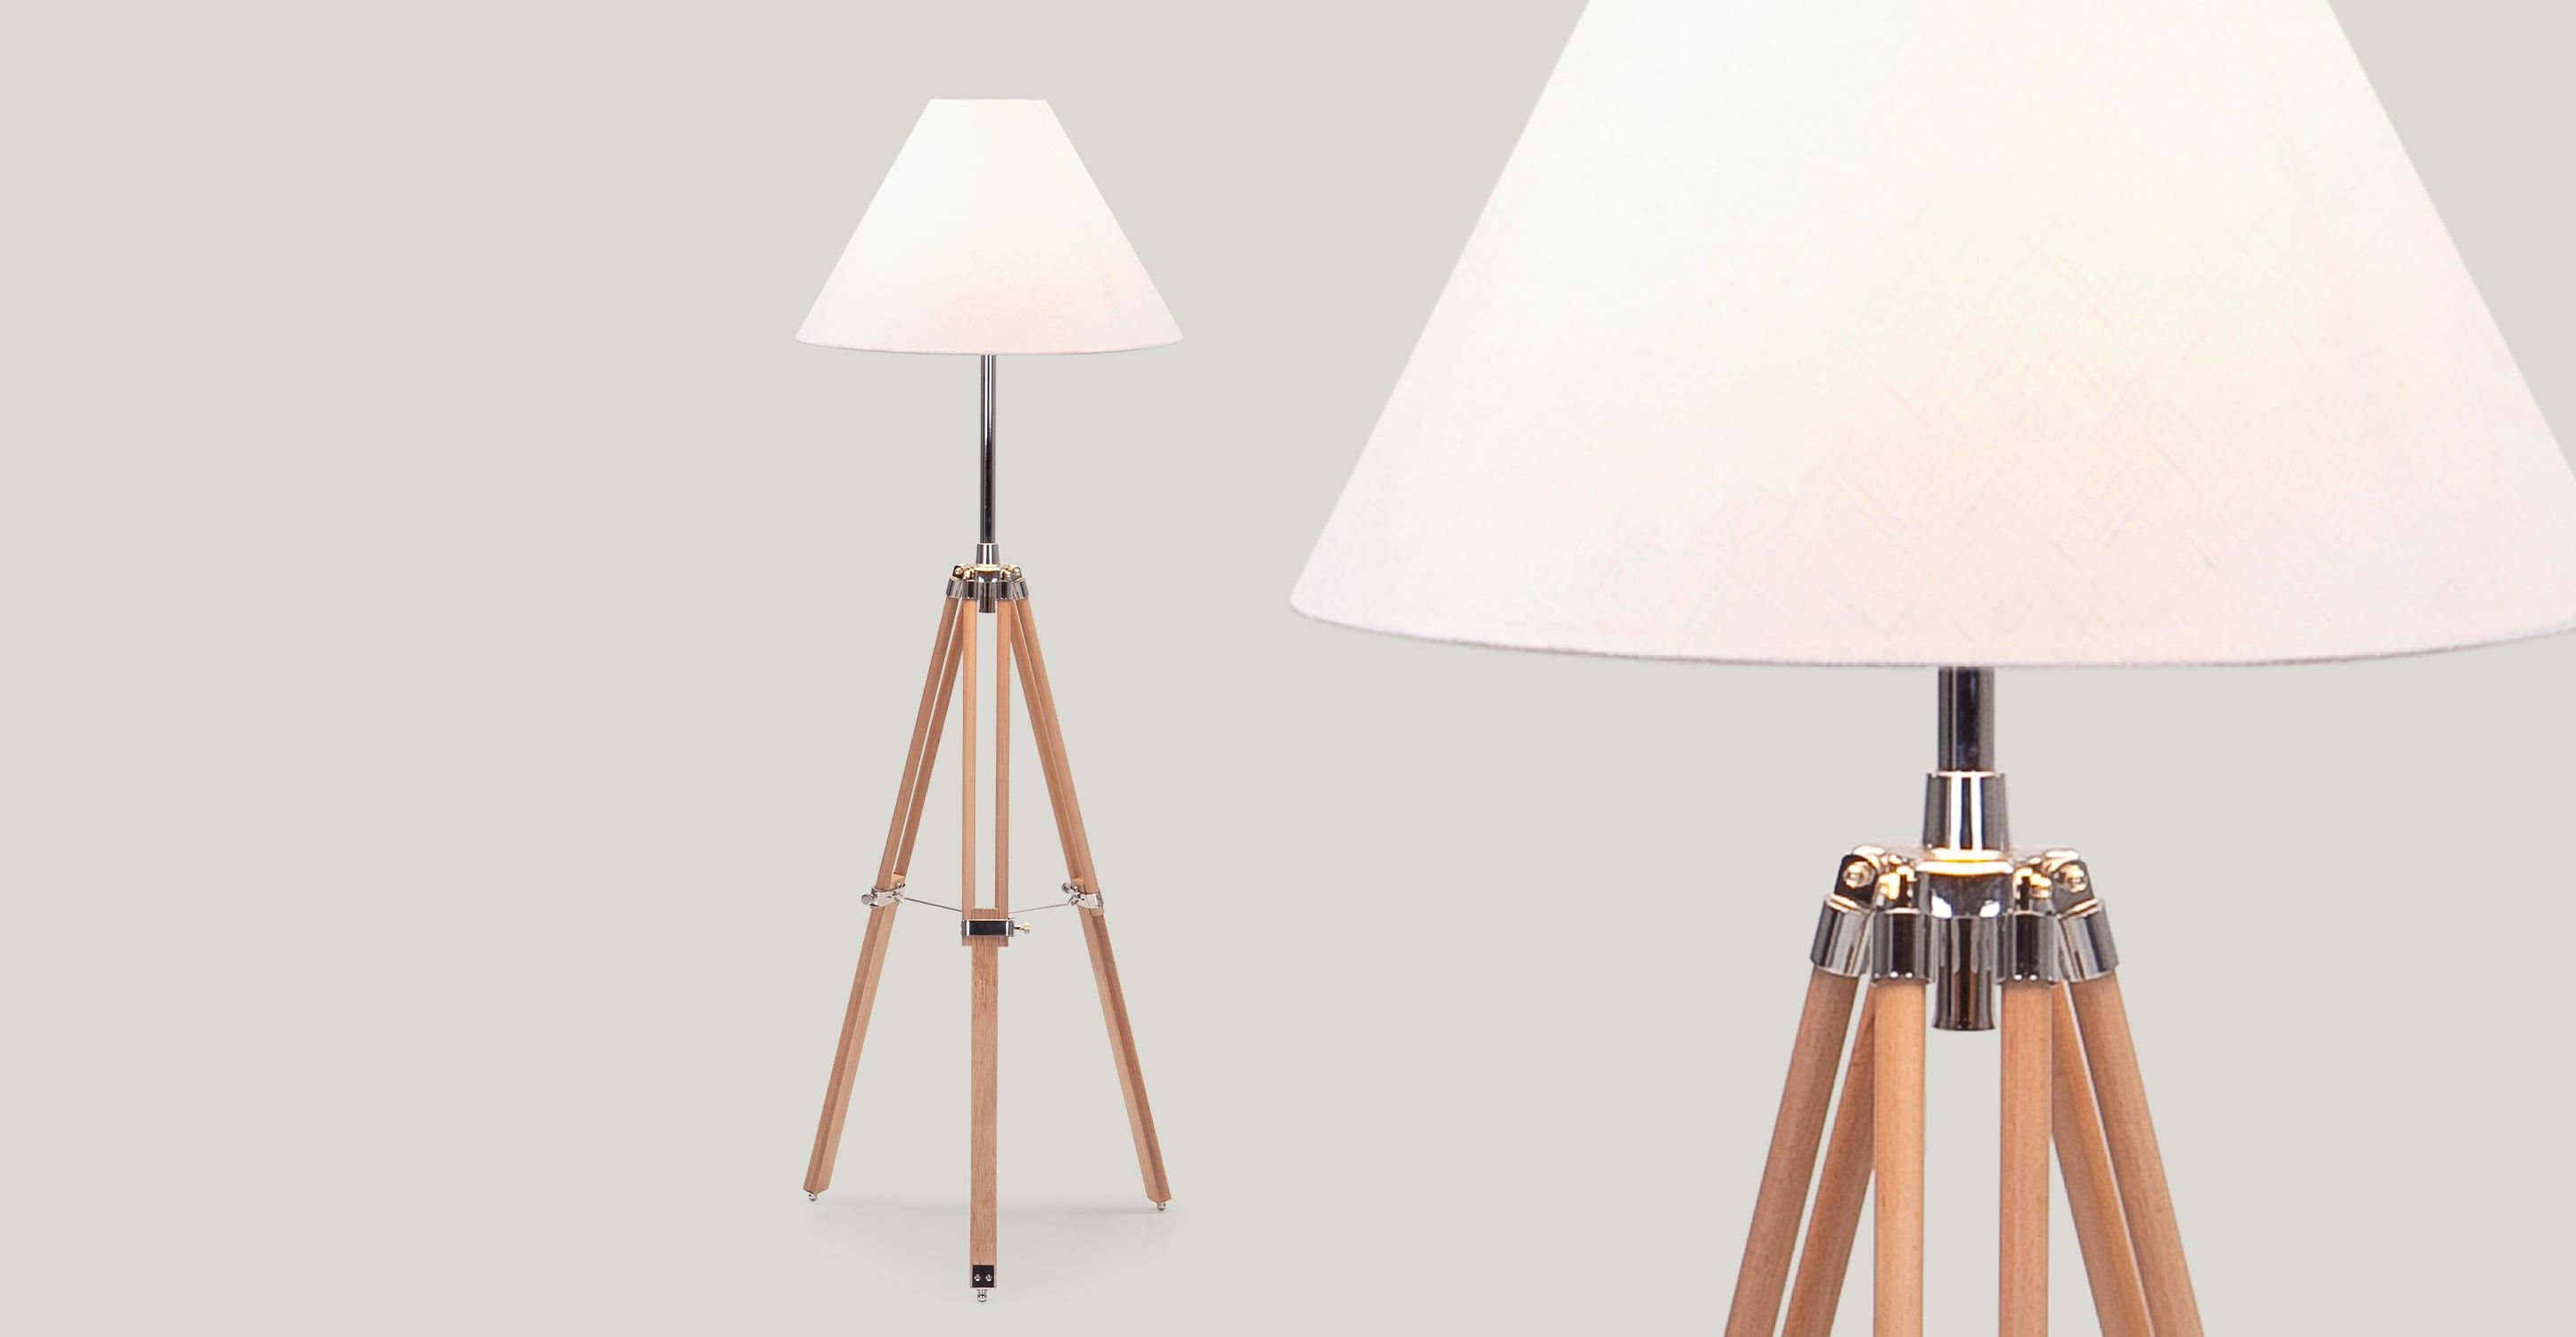 Navy tripod floor lamp natural wood from made brown express navy tripod floor lamp natural wood from made brown express delivery this lamp adds a contemporary nautical edge to your look made with a aloadofball Image collections